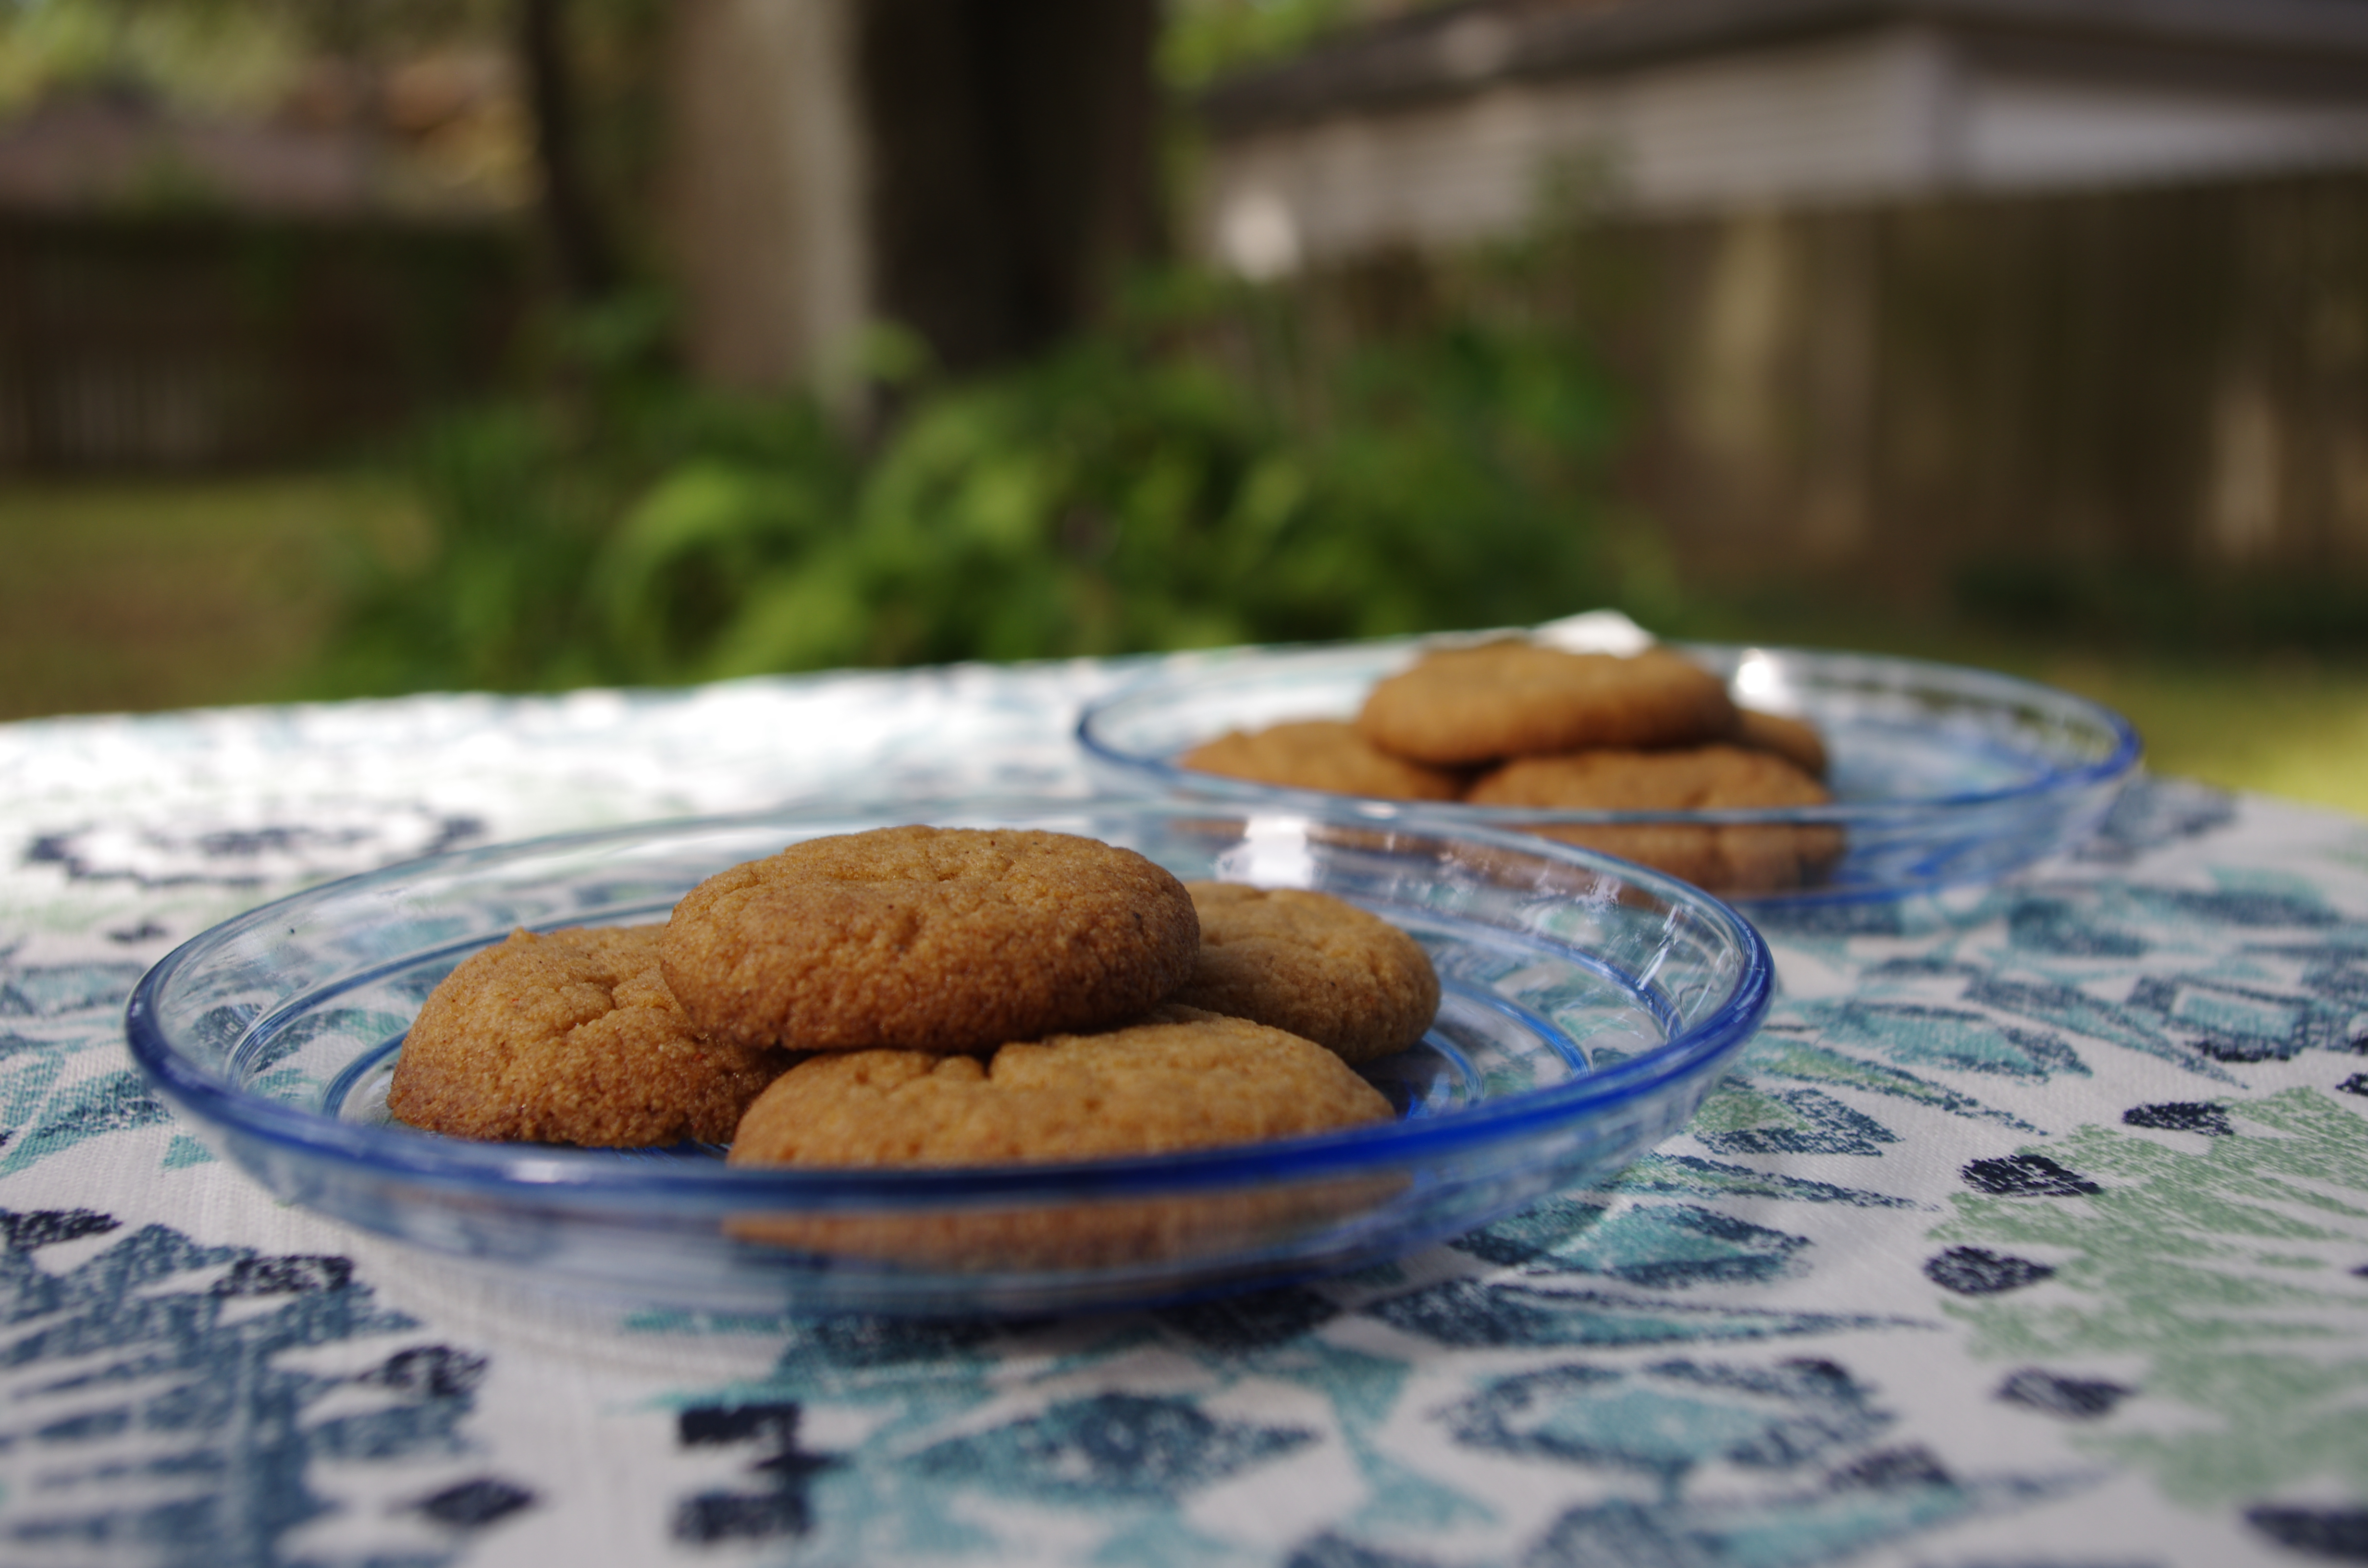 for several years now i have tried to make ginger snap cookies that are gluten and sugar free but have